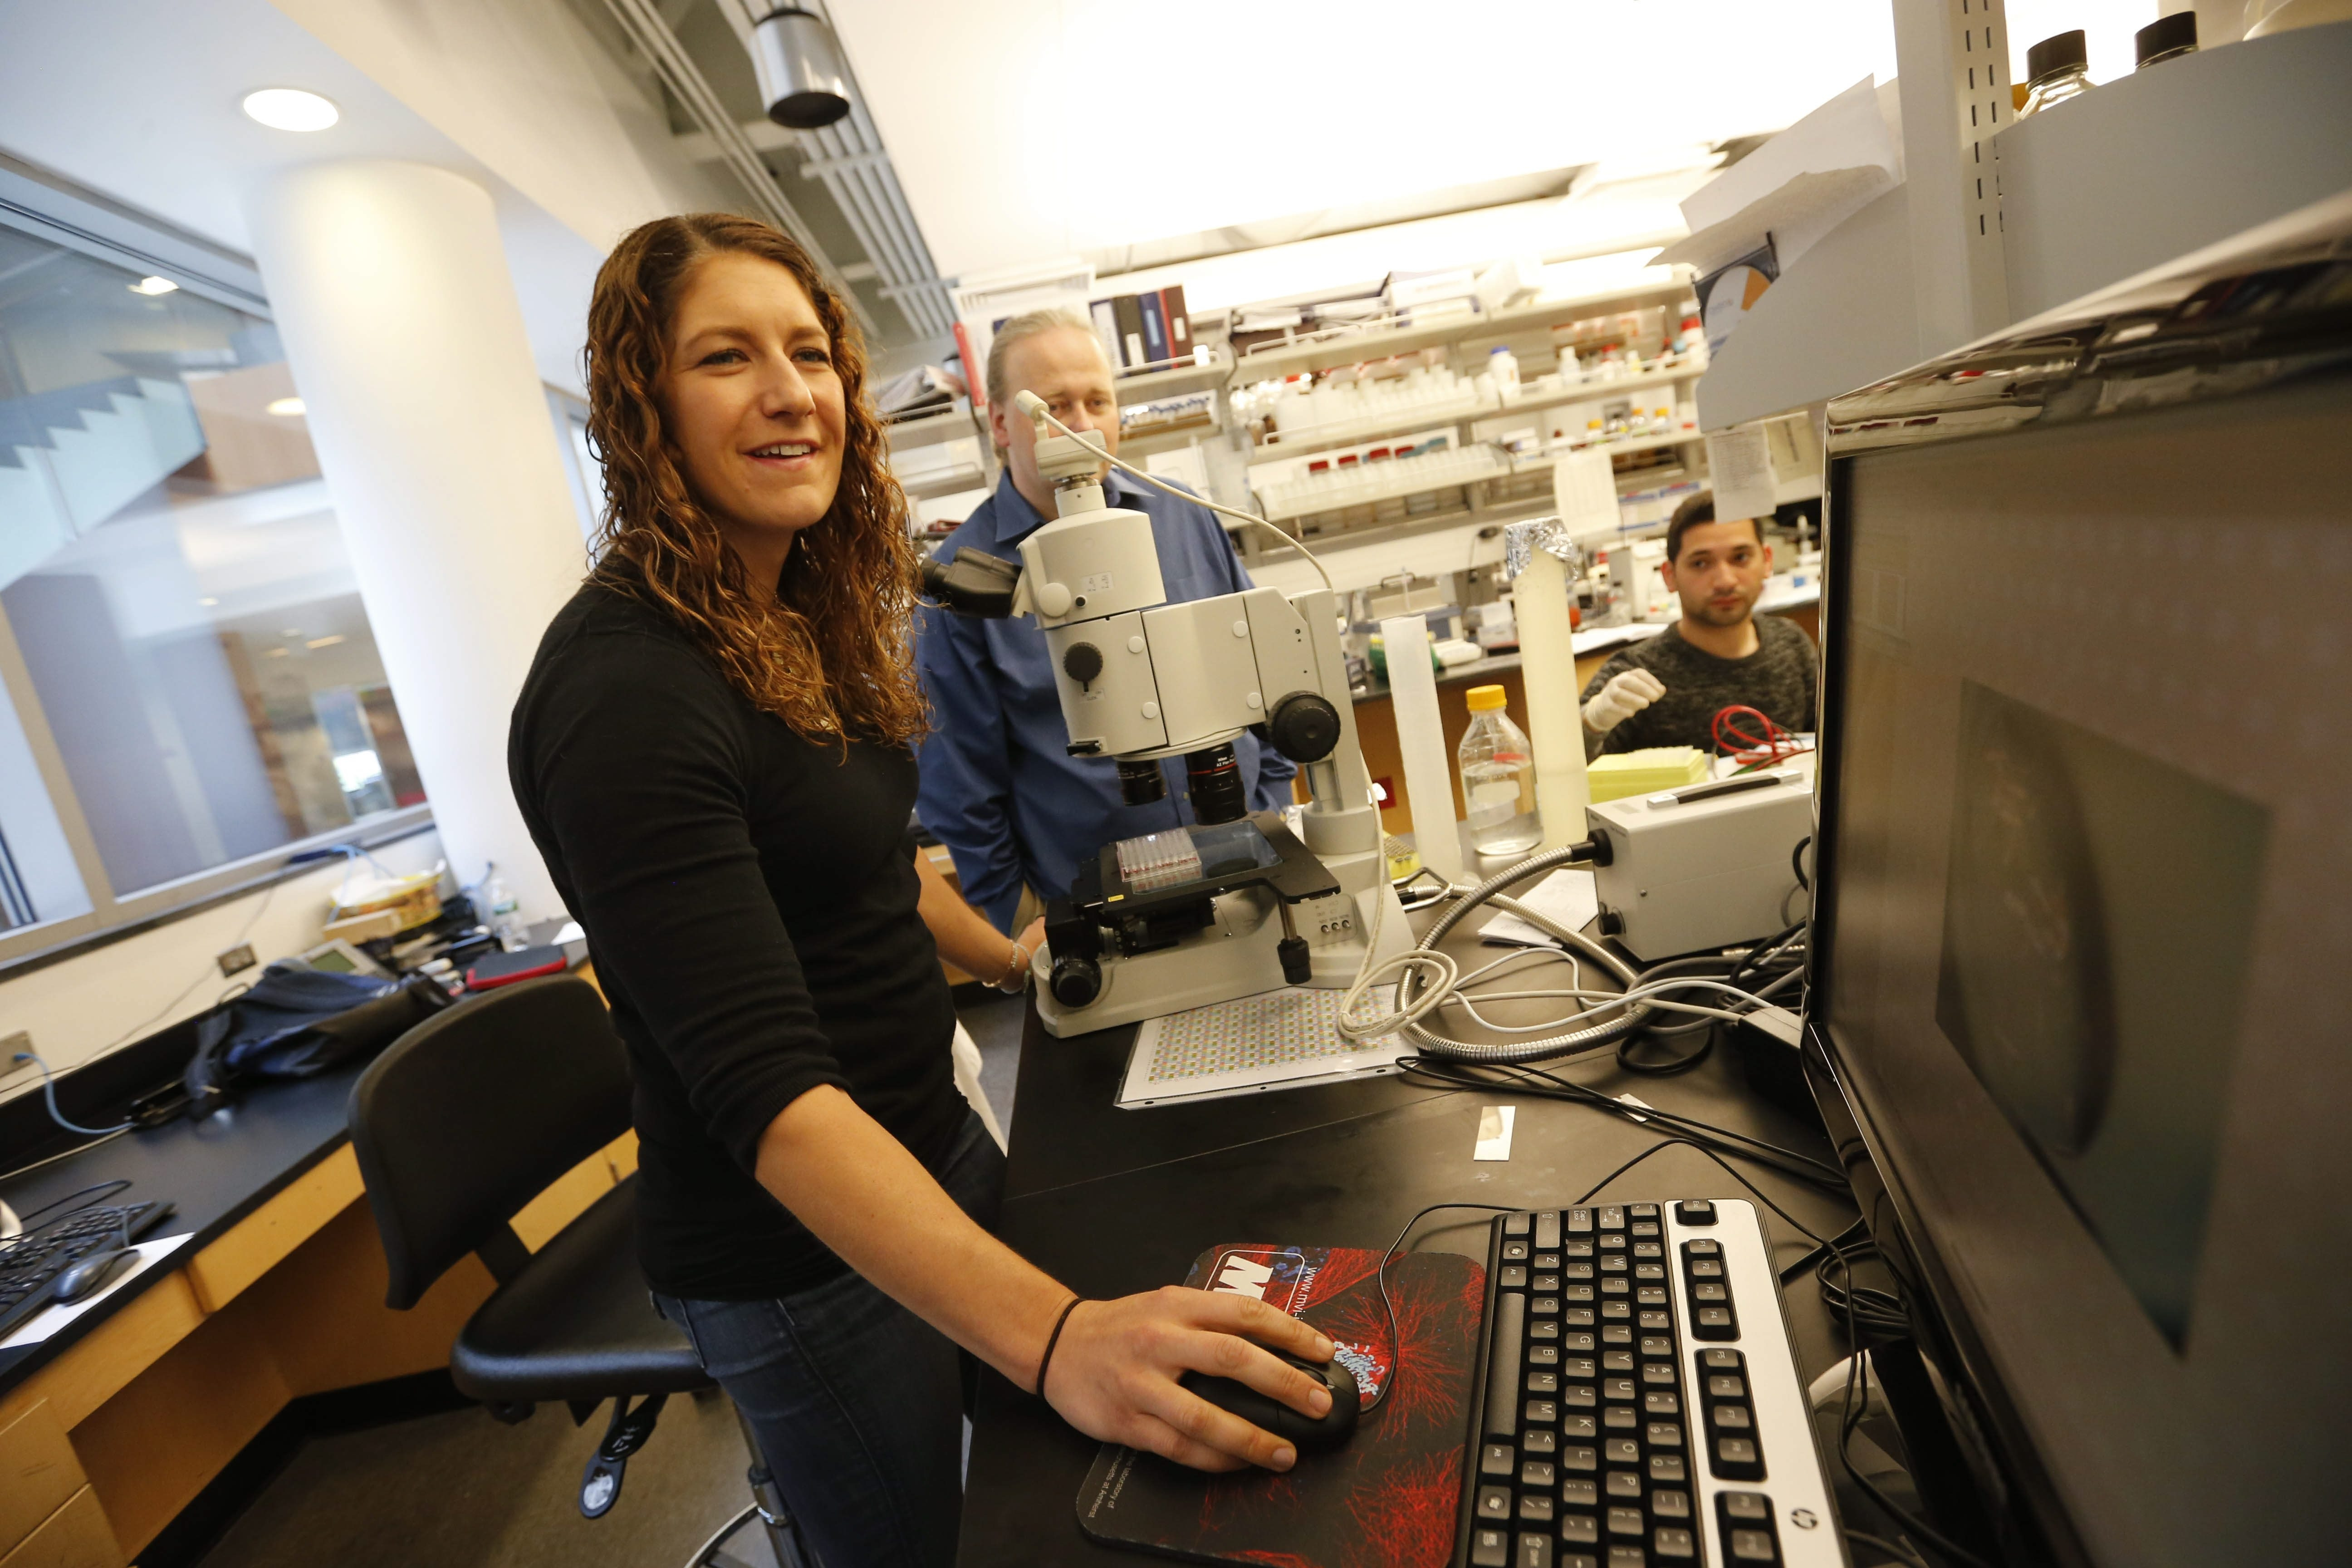 Kristin Sutton, senior project manager at HarkerBIO, works in the company's lab in the Hauptman-Woodward Medical Research Institute, Friday, June 17, 2016.  (Derek Gee/Buffalo News)